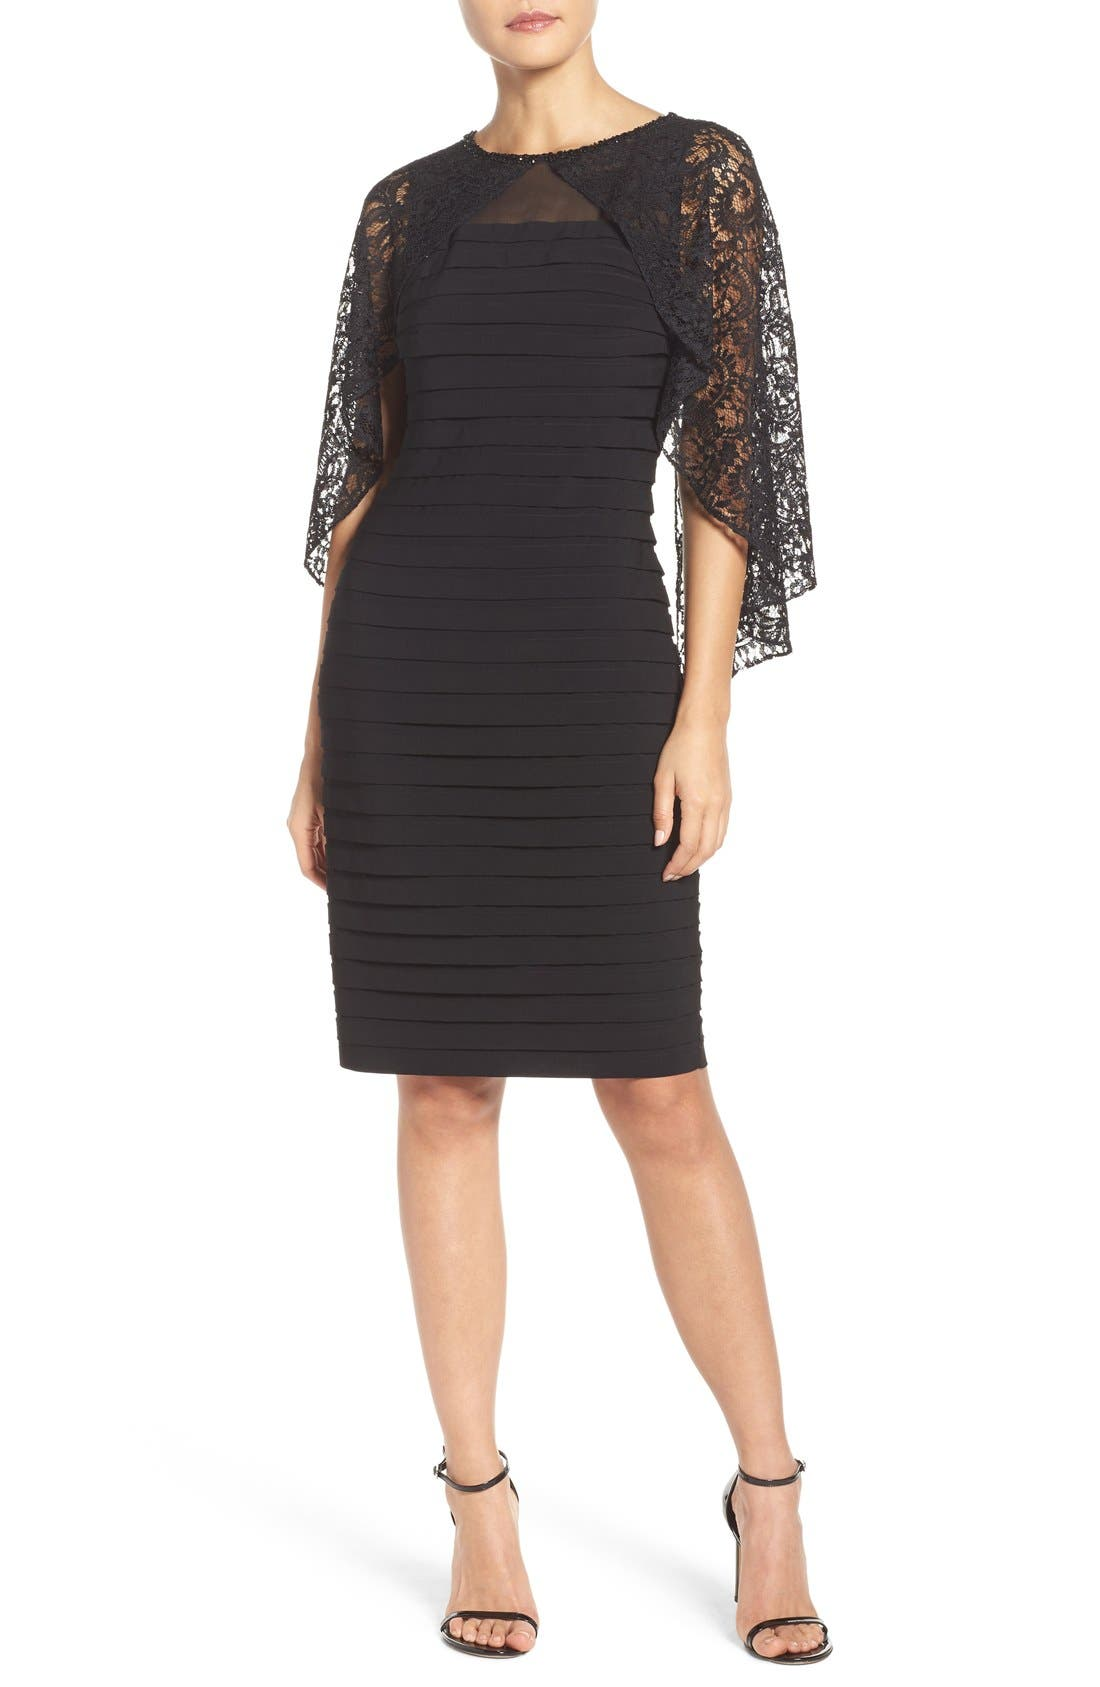 ADRIANNA PAPELL,                             Cape Dress,                             Alternate thumbnail 8, color,                             002